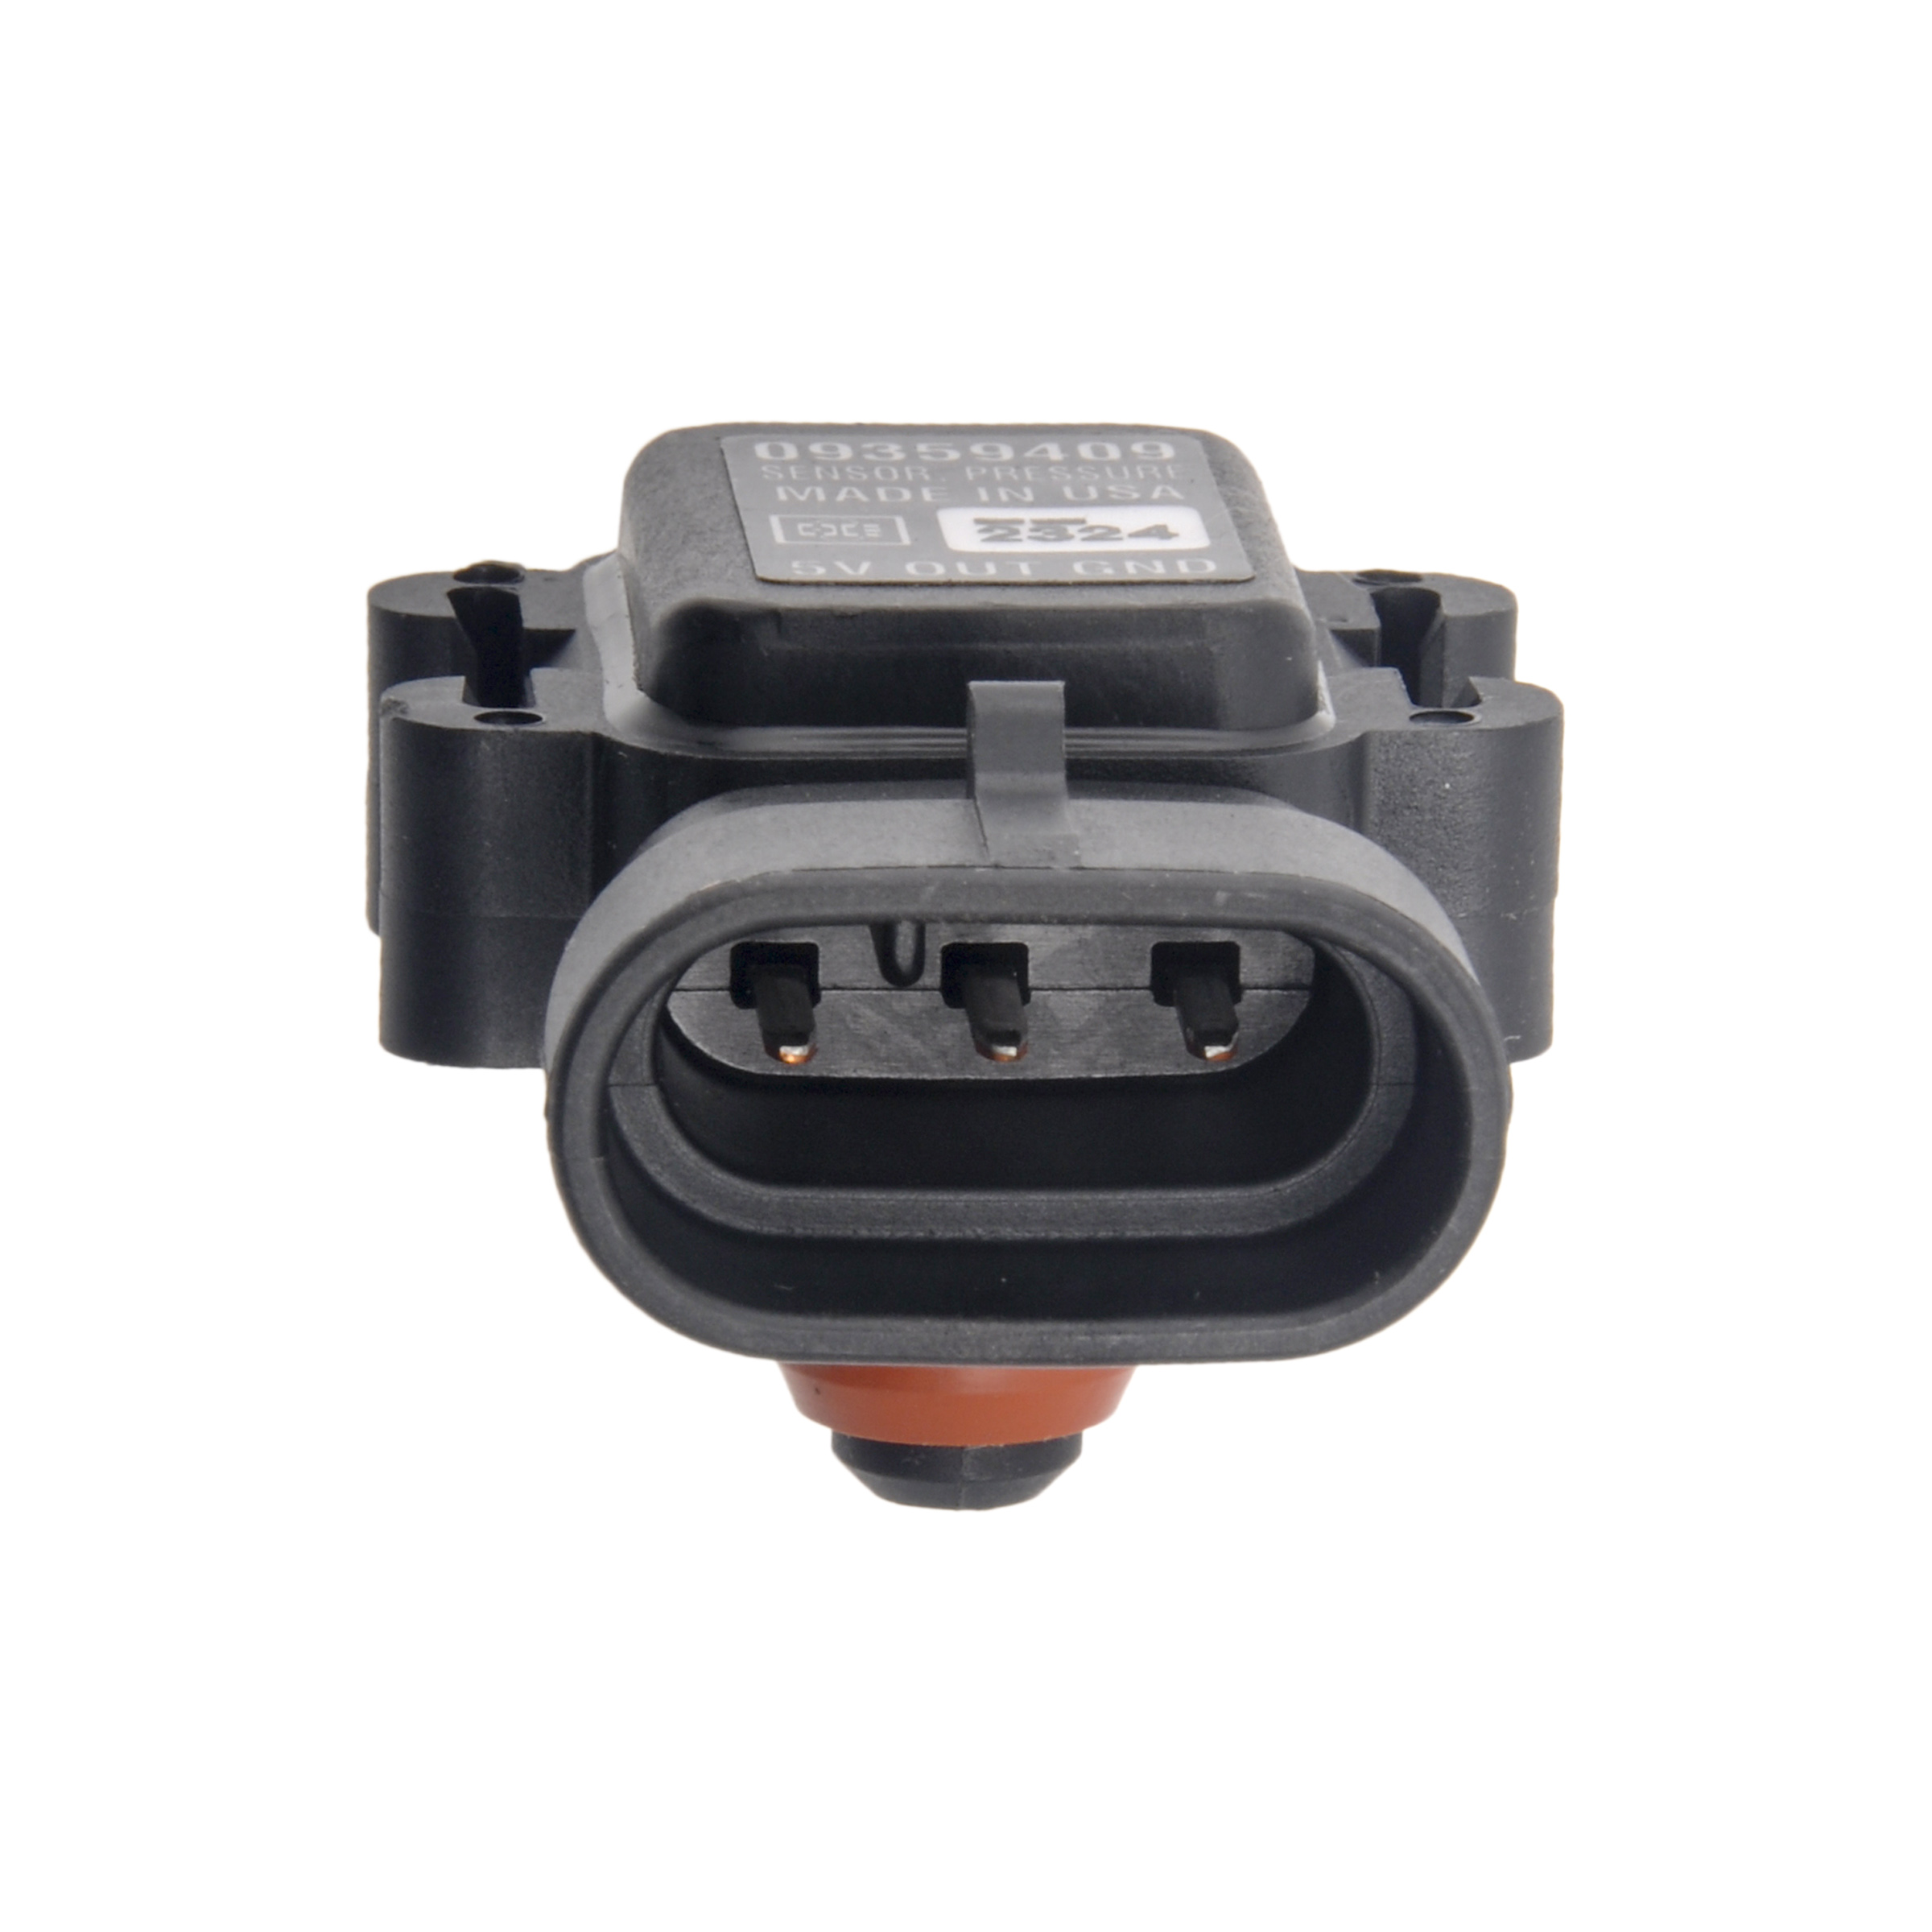 Map Sensor Or Maf Sensor: New Herko MPS701 Manifold Absolute Barometric Pressure